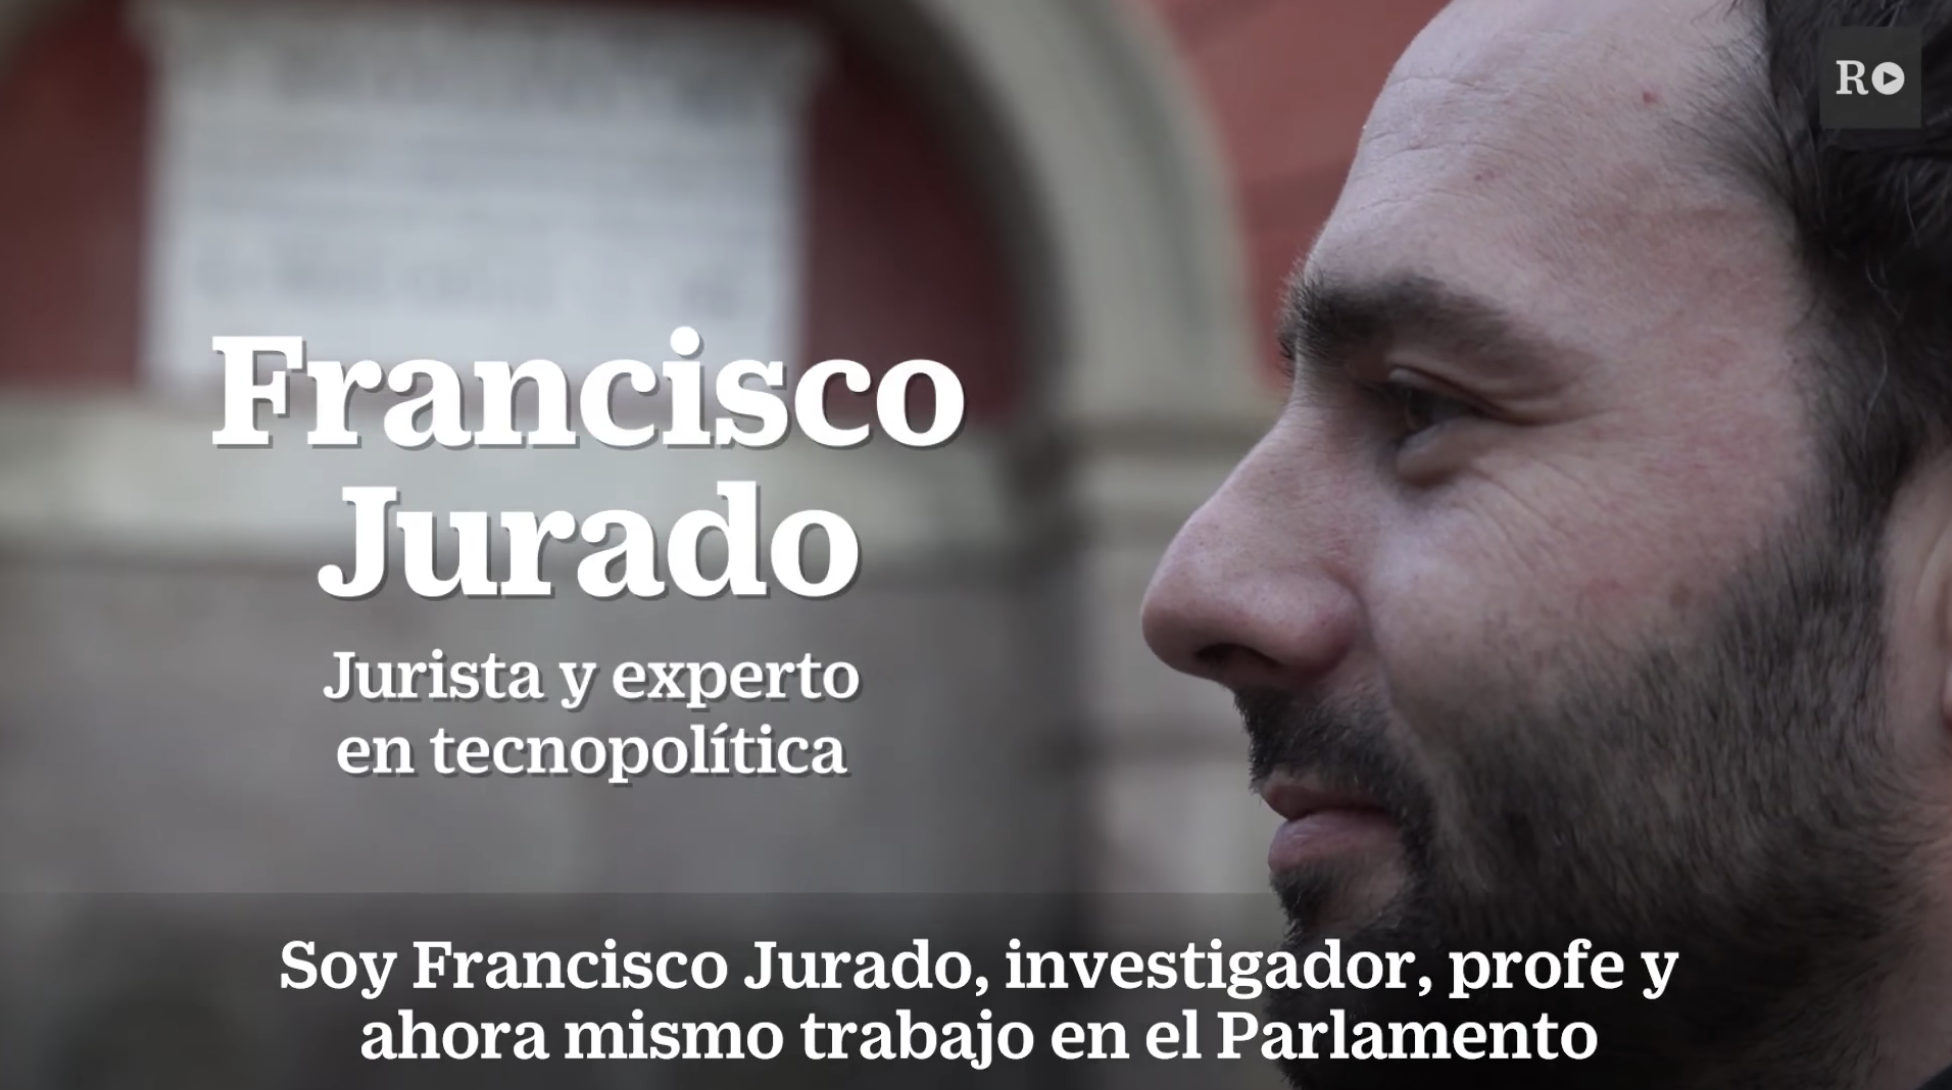 6-Francisco Jurado.png